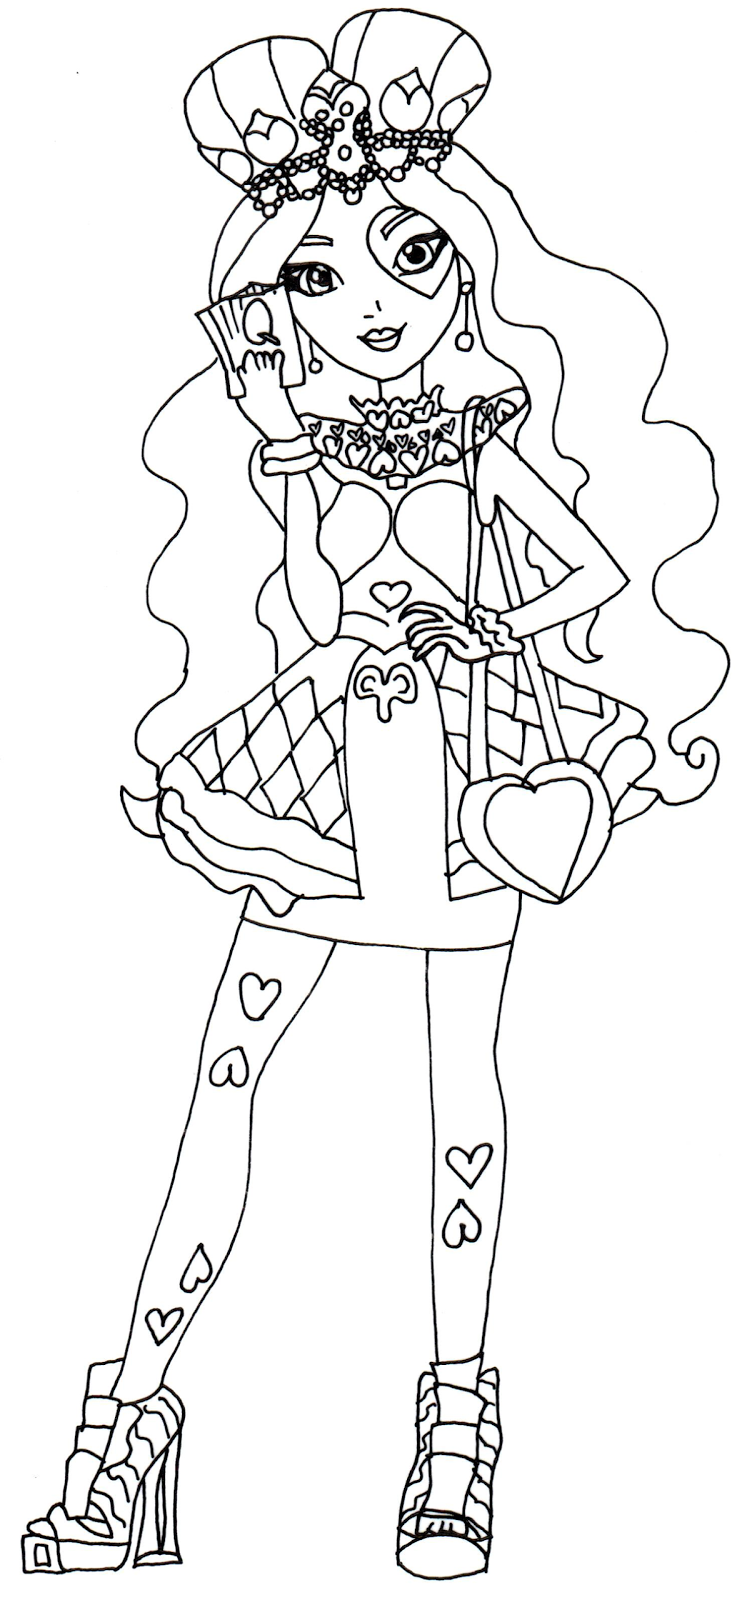 752x1600 Free Printable Ever After High Coloring Pages Lizzie Hearts Ever